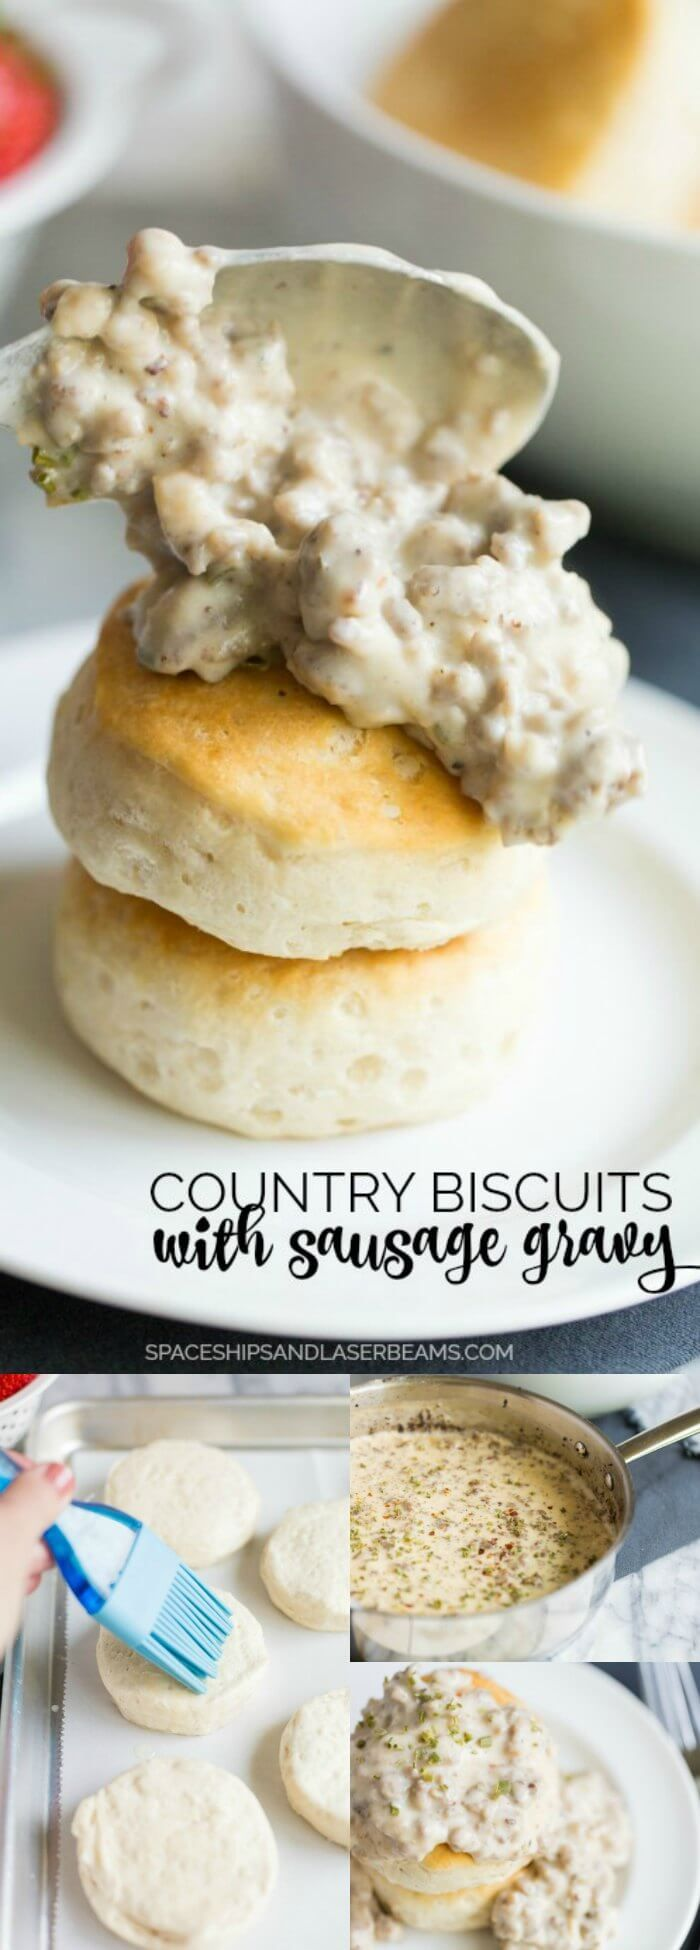 Country Biscuits with Sausage Gravy